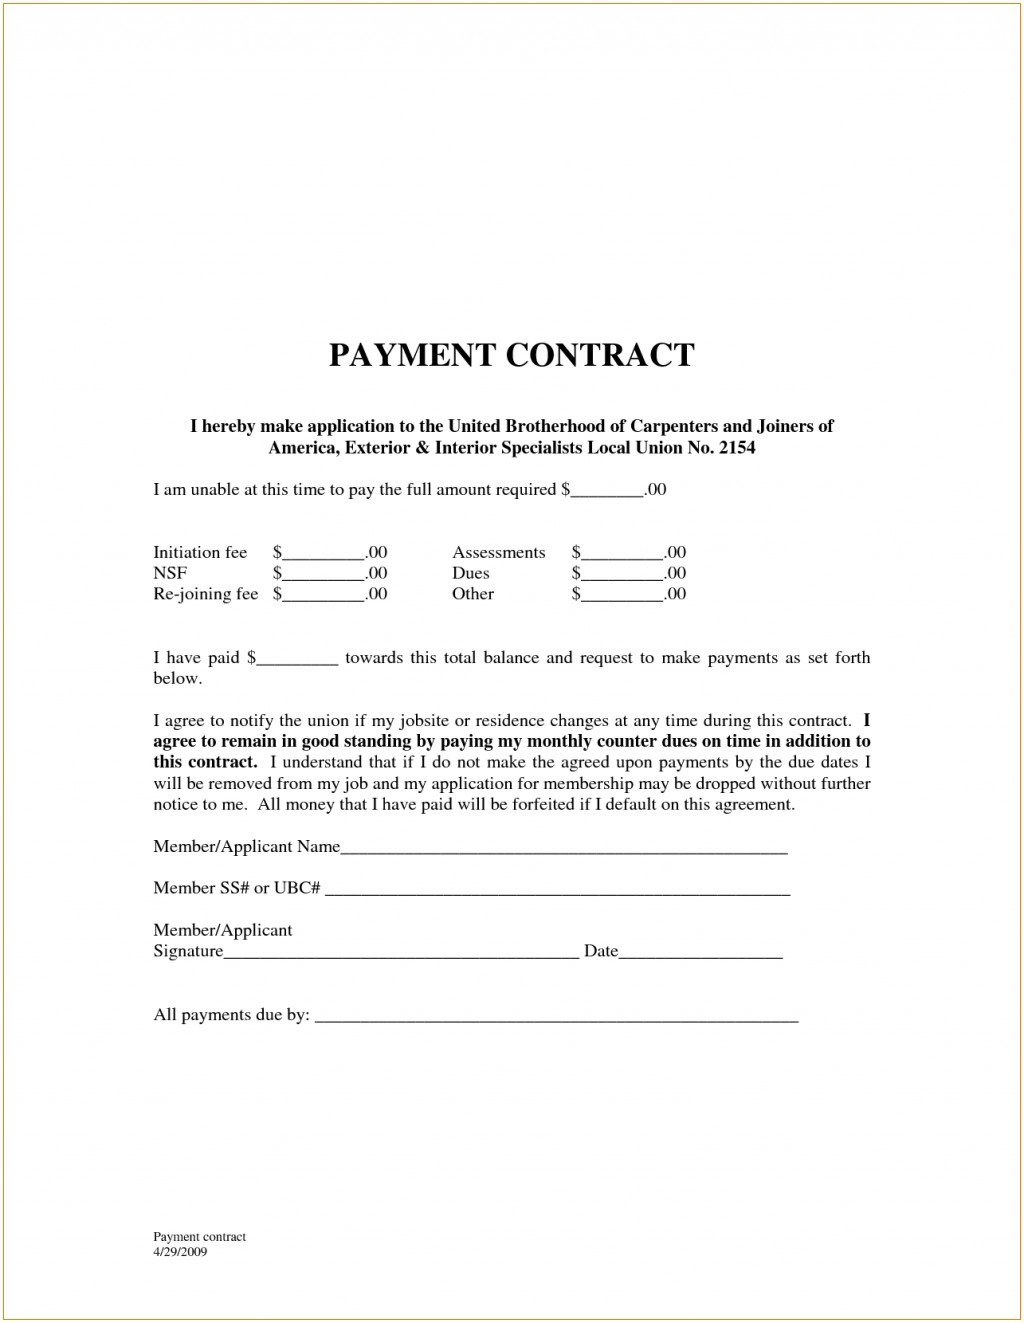 Full and Final Settlement Letter Template Car Accident - Settlement Agreement Template